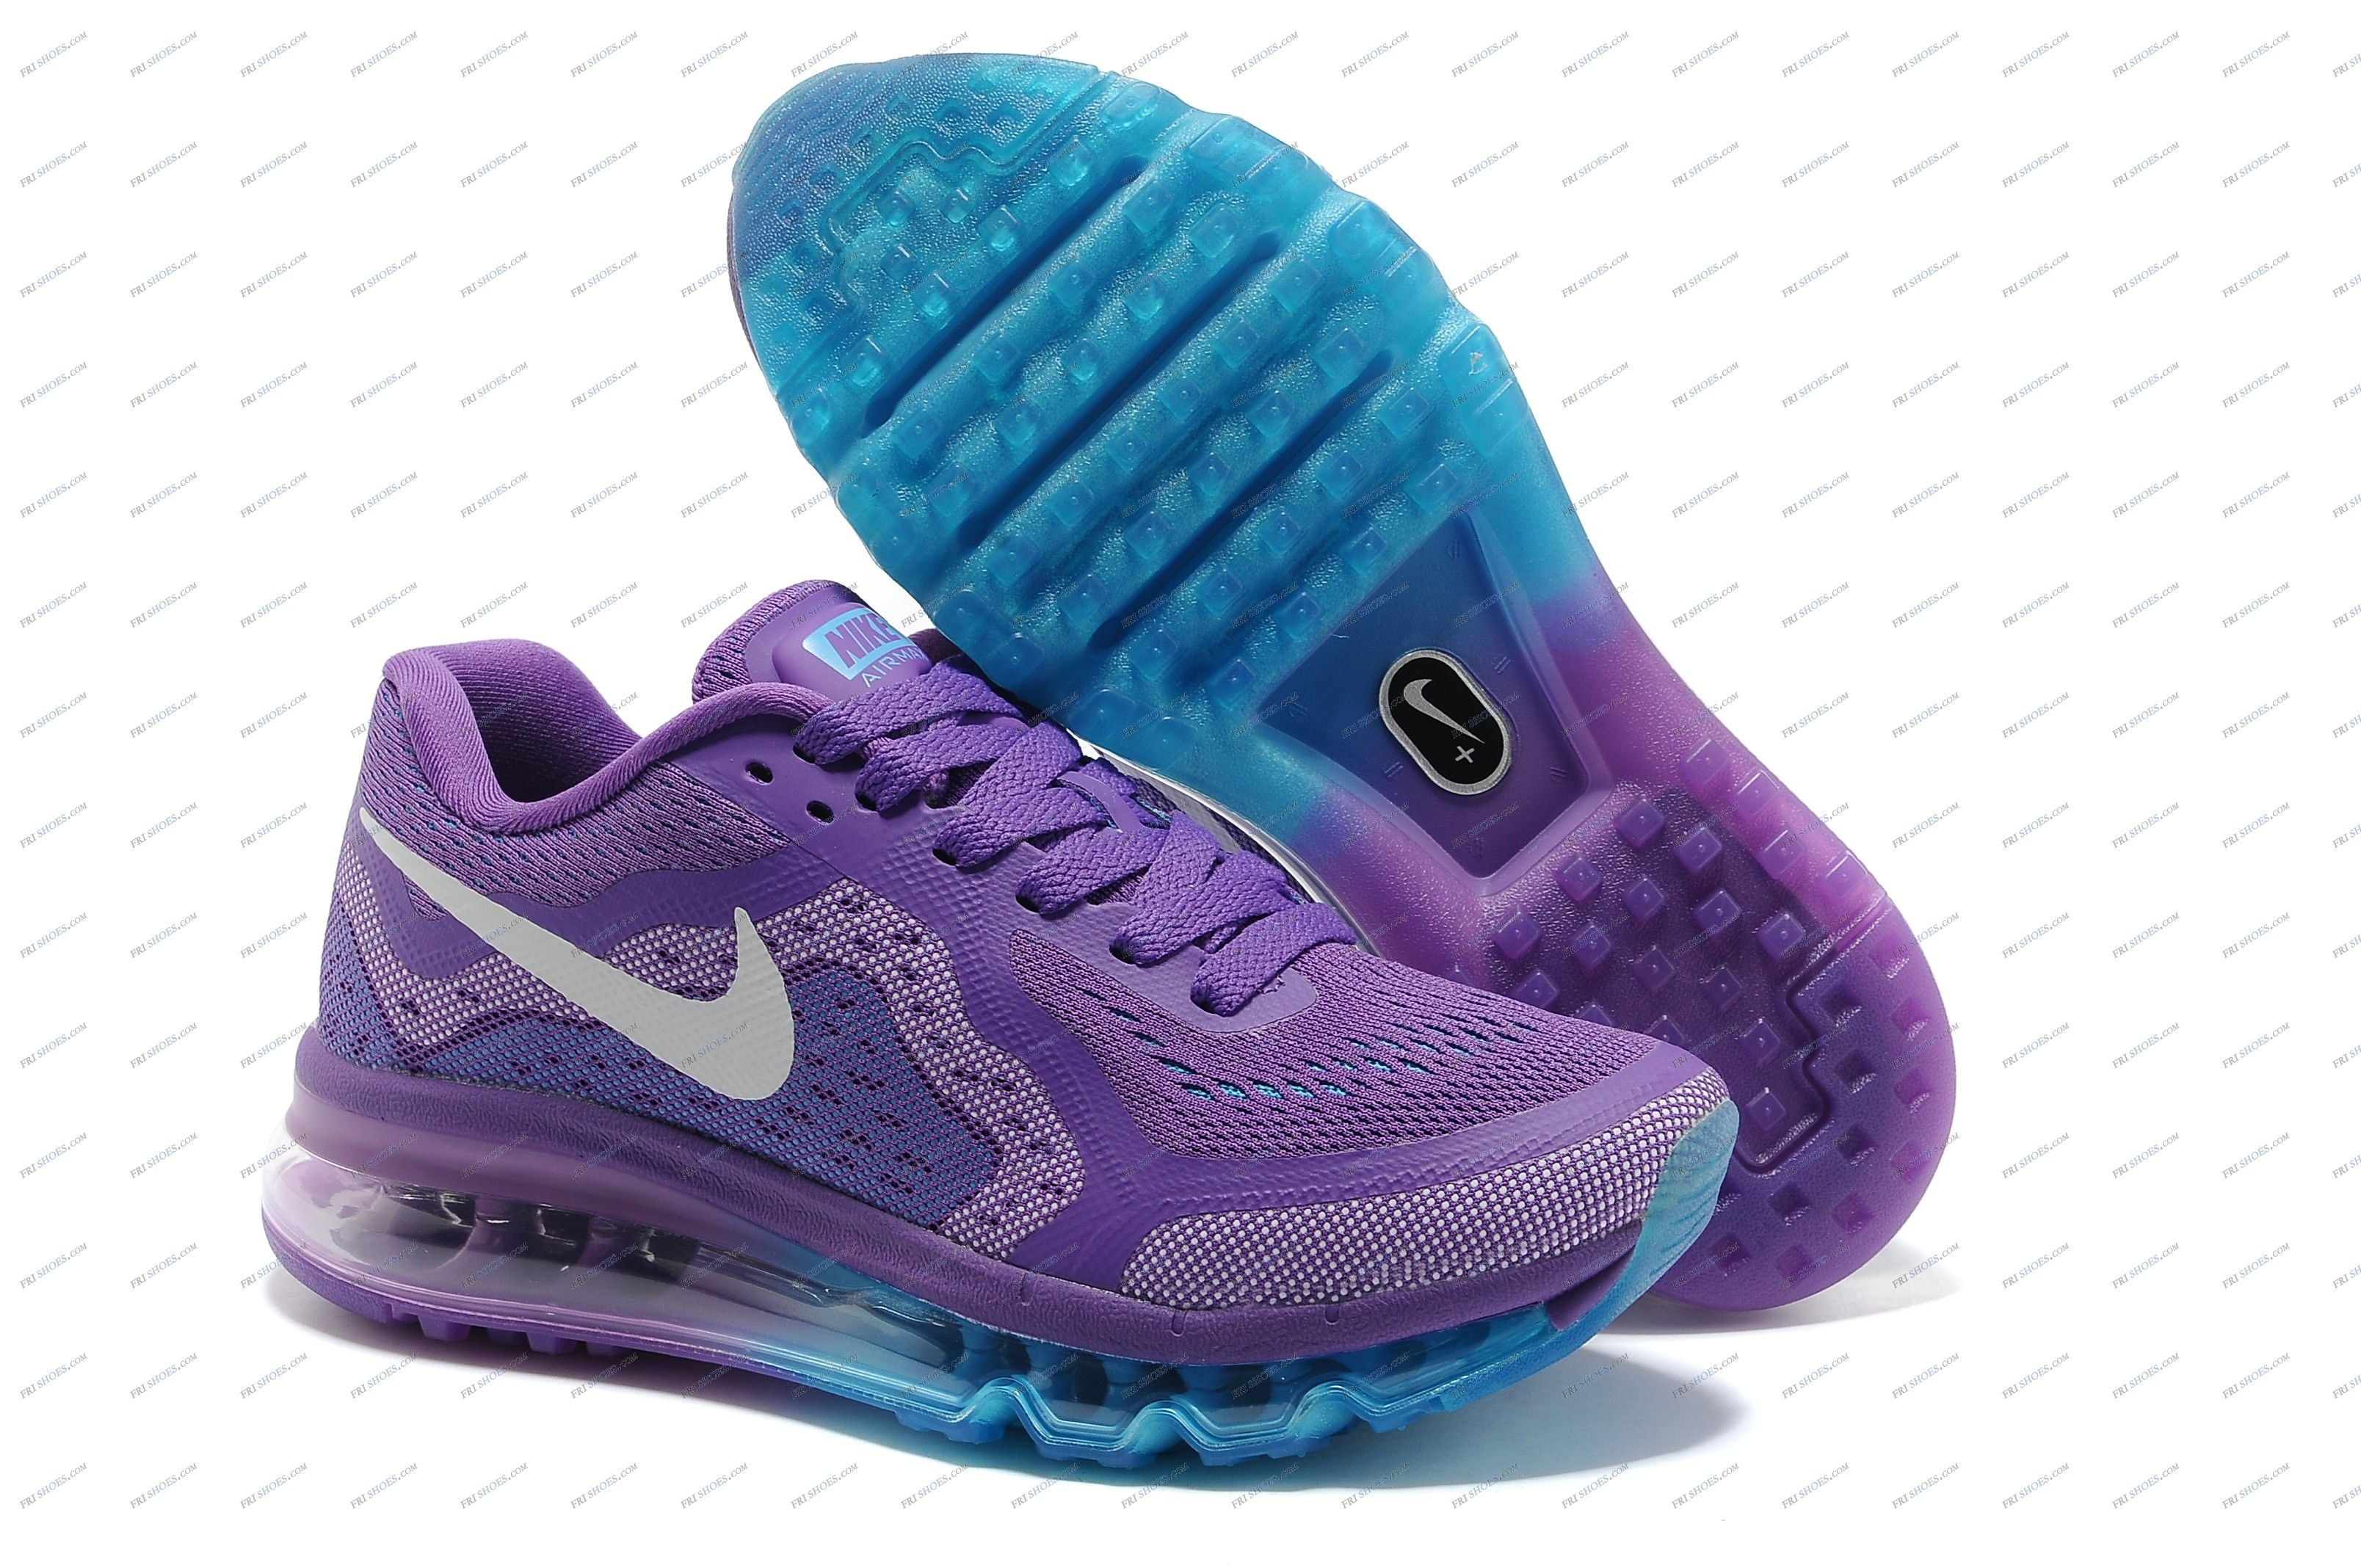 new styles cd02b e7c93 Nike Air Max 2014 Purple White Women s Running shoes nike sneakers